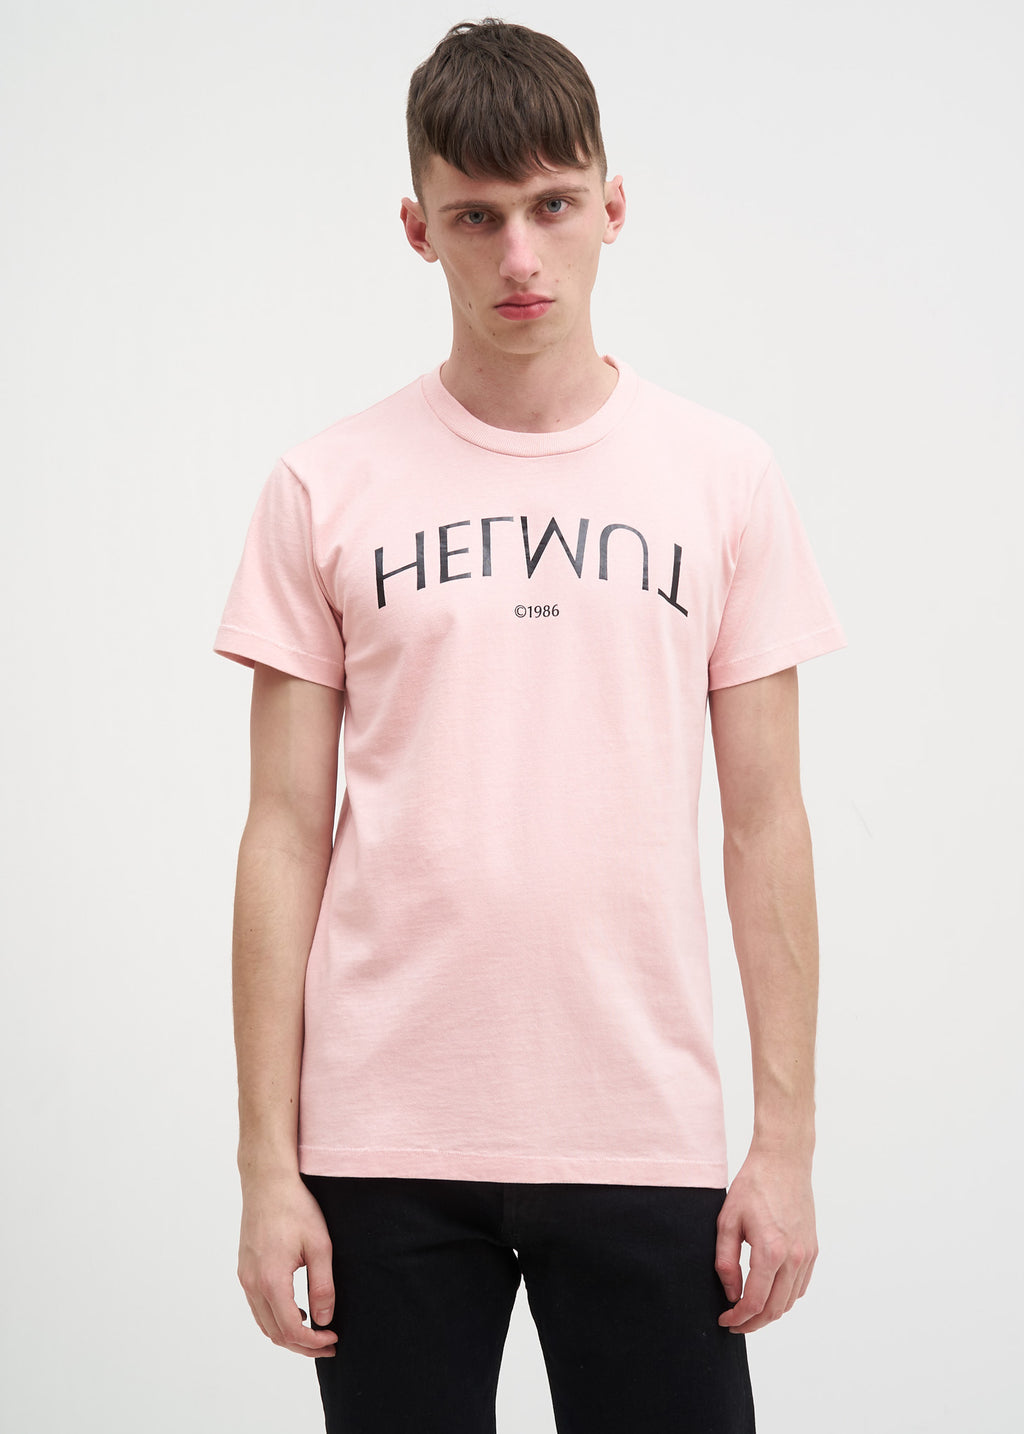 Rose Helmut Logo Hack Little Tee